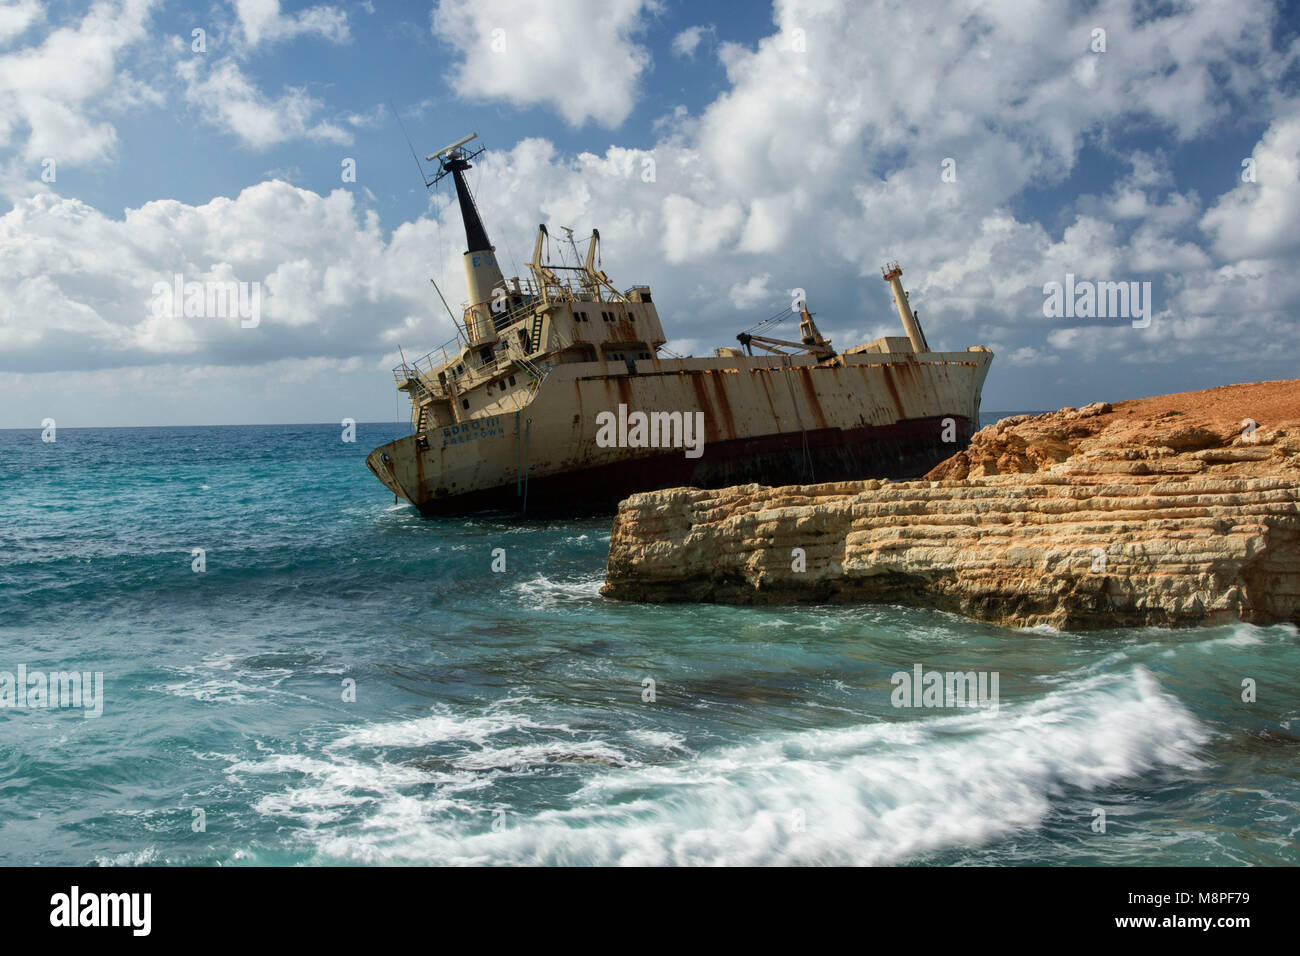 EDRO III resting off the rocks near the Sea Caves northwest of paphos, Cyprus, Mediterranean - Stock Image